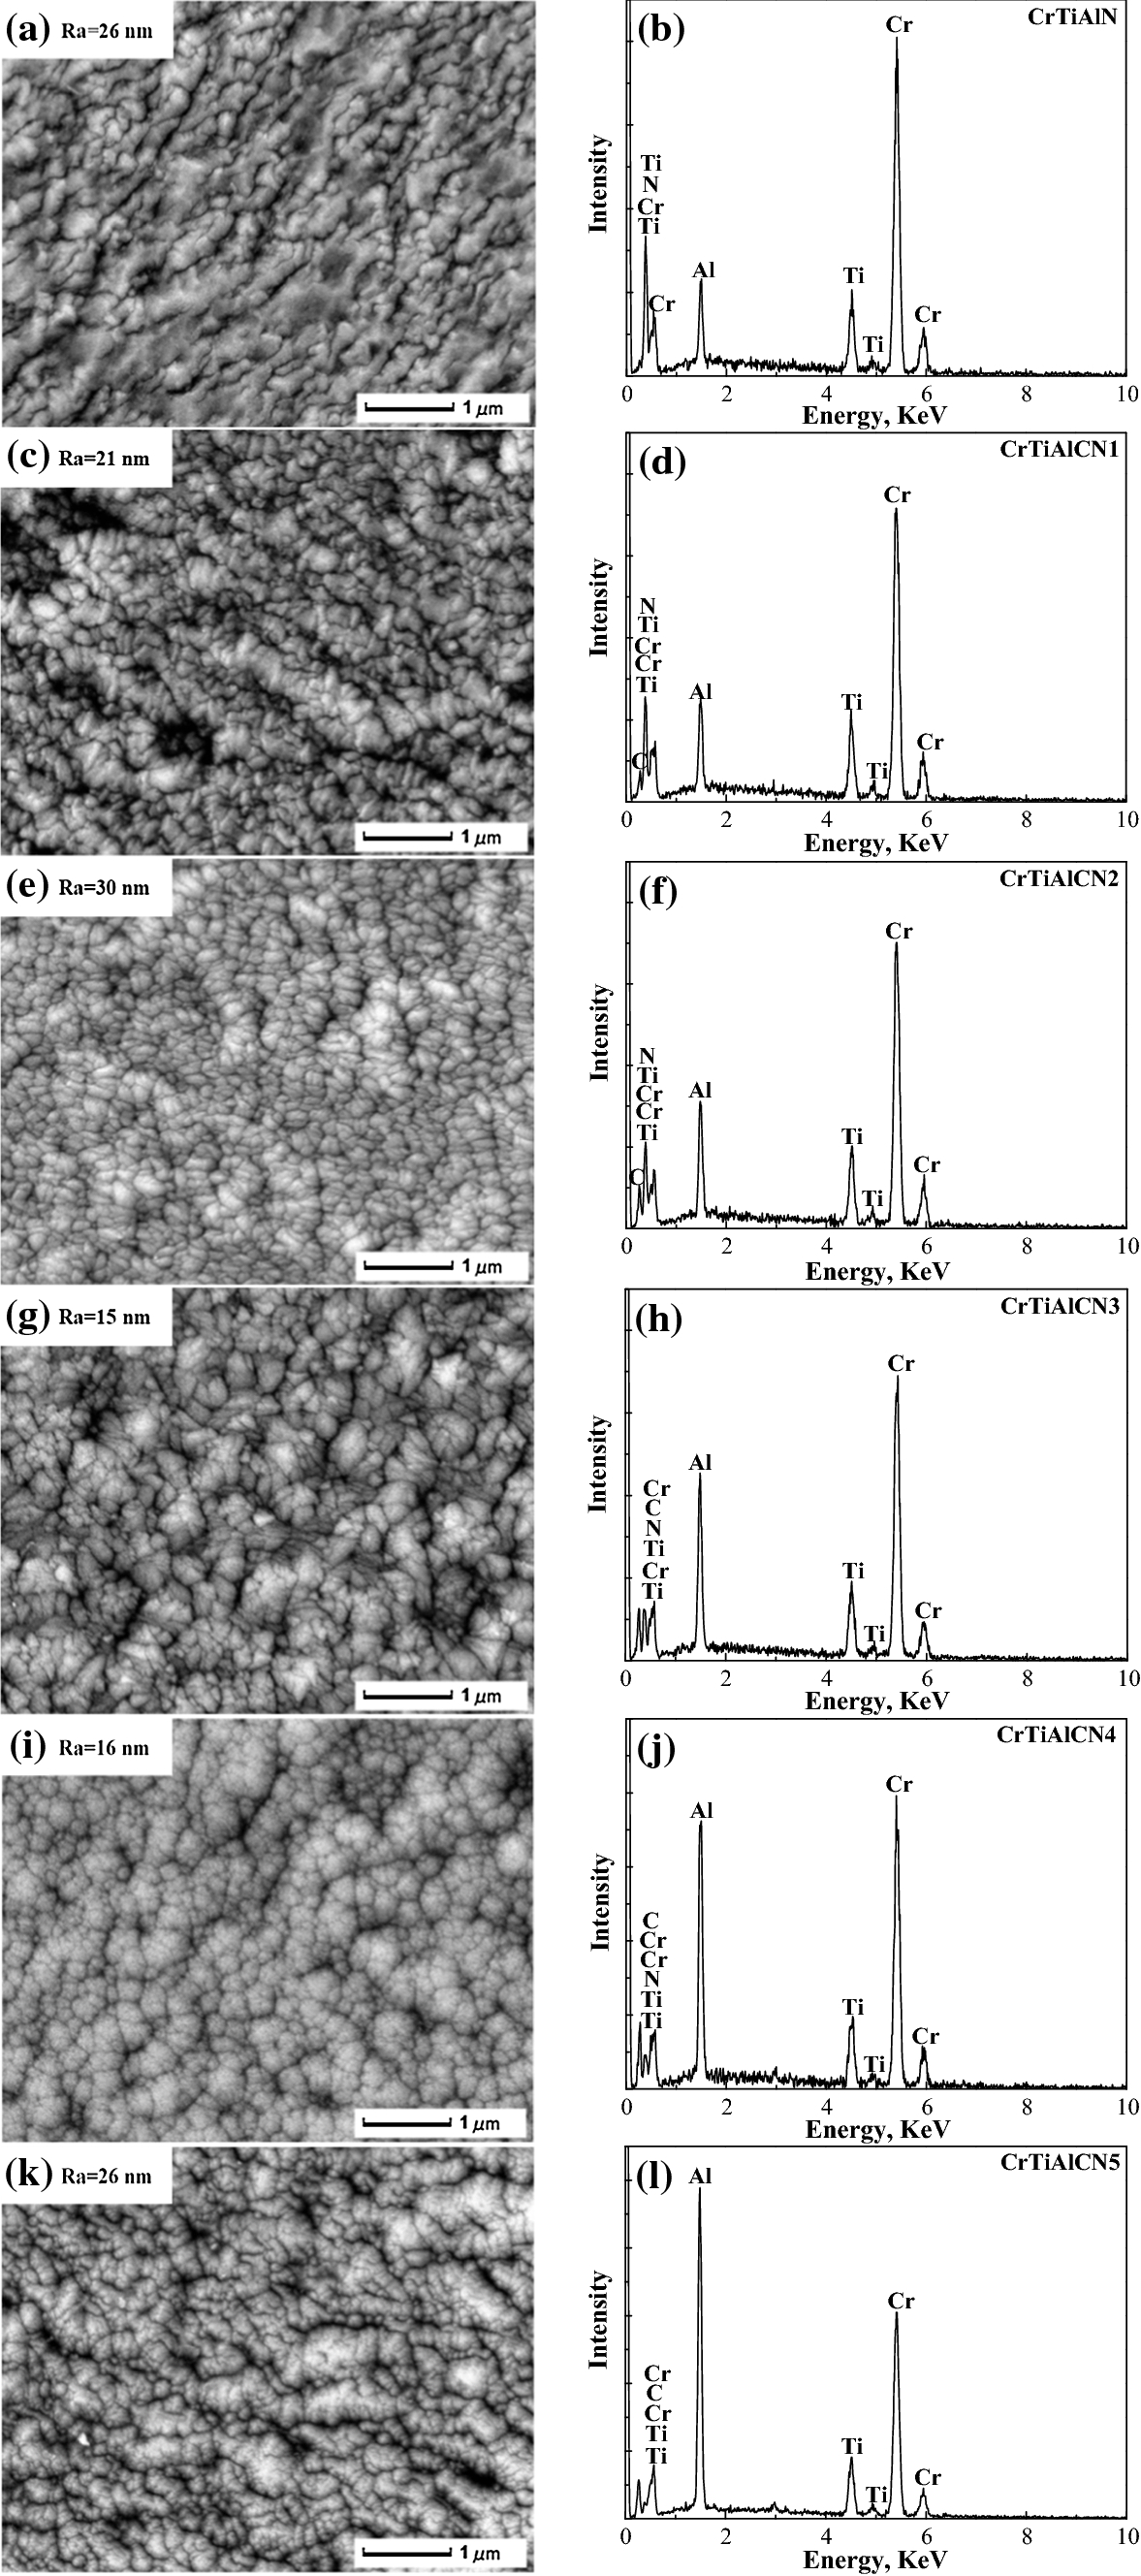 Structure and Tribological Properties of CrTiAlCN Coatings